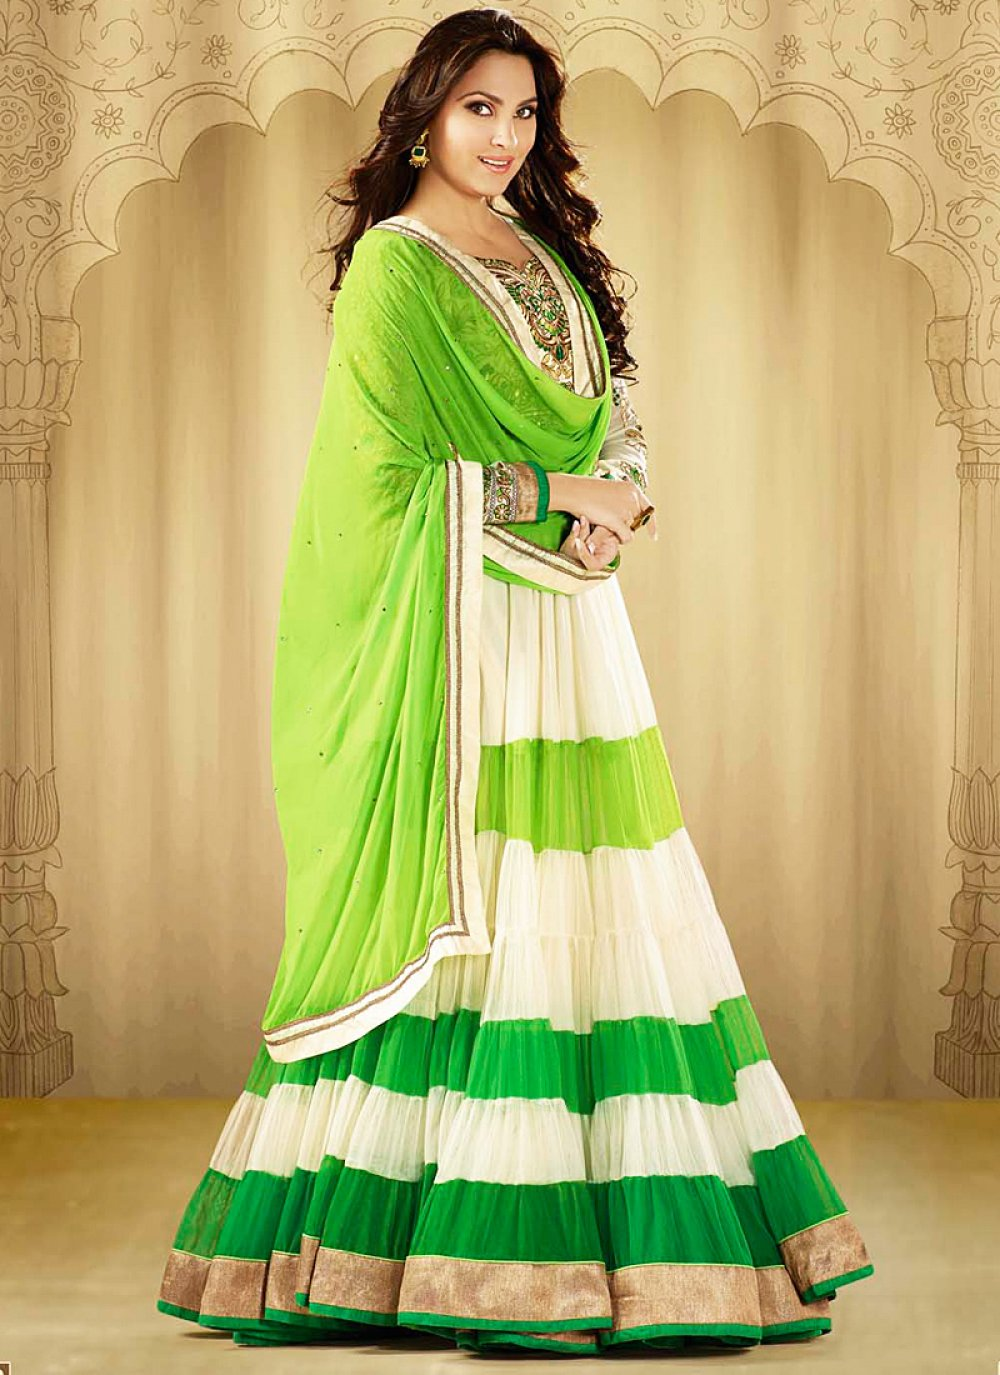 Lara Dutta Off White And Green Embroidery Work Anarkali Suit